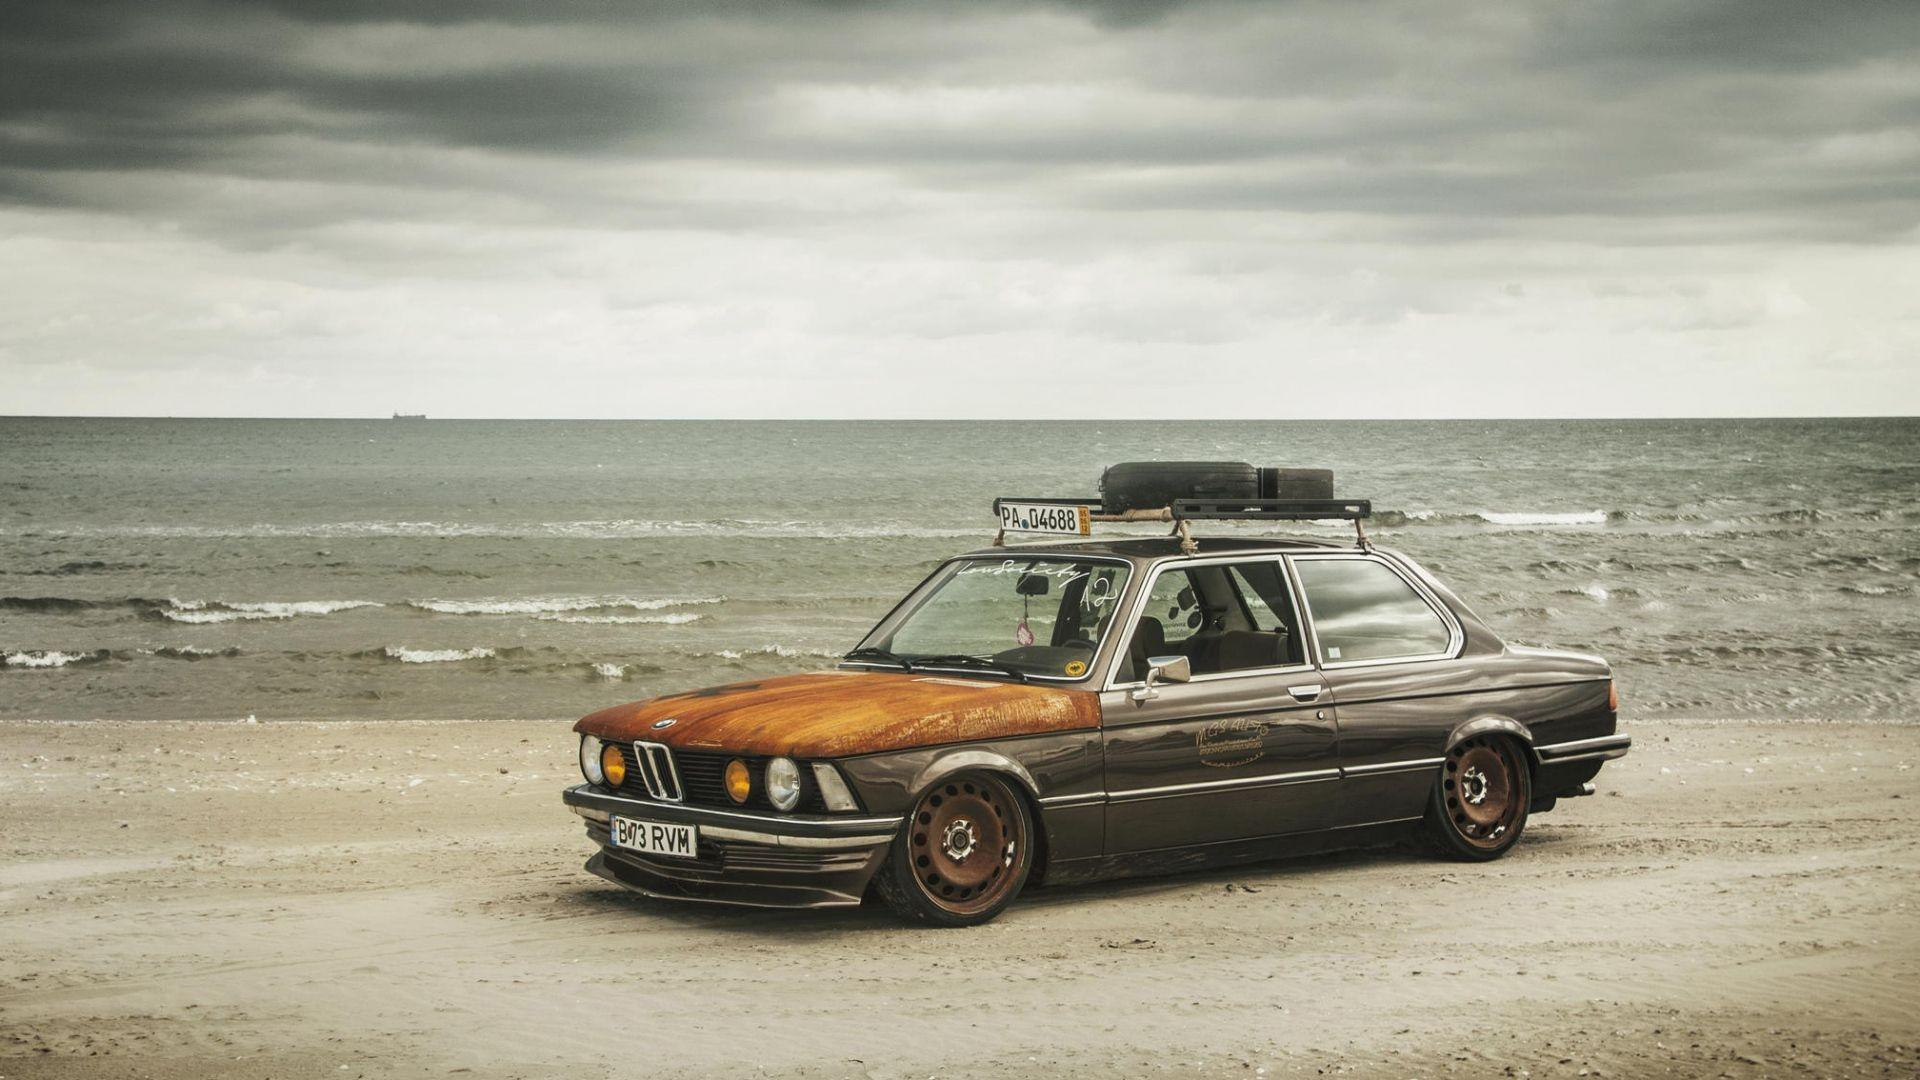 Download Wallpapers 1920x1080 Bmw, E21, Stance, Tuning Full HD